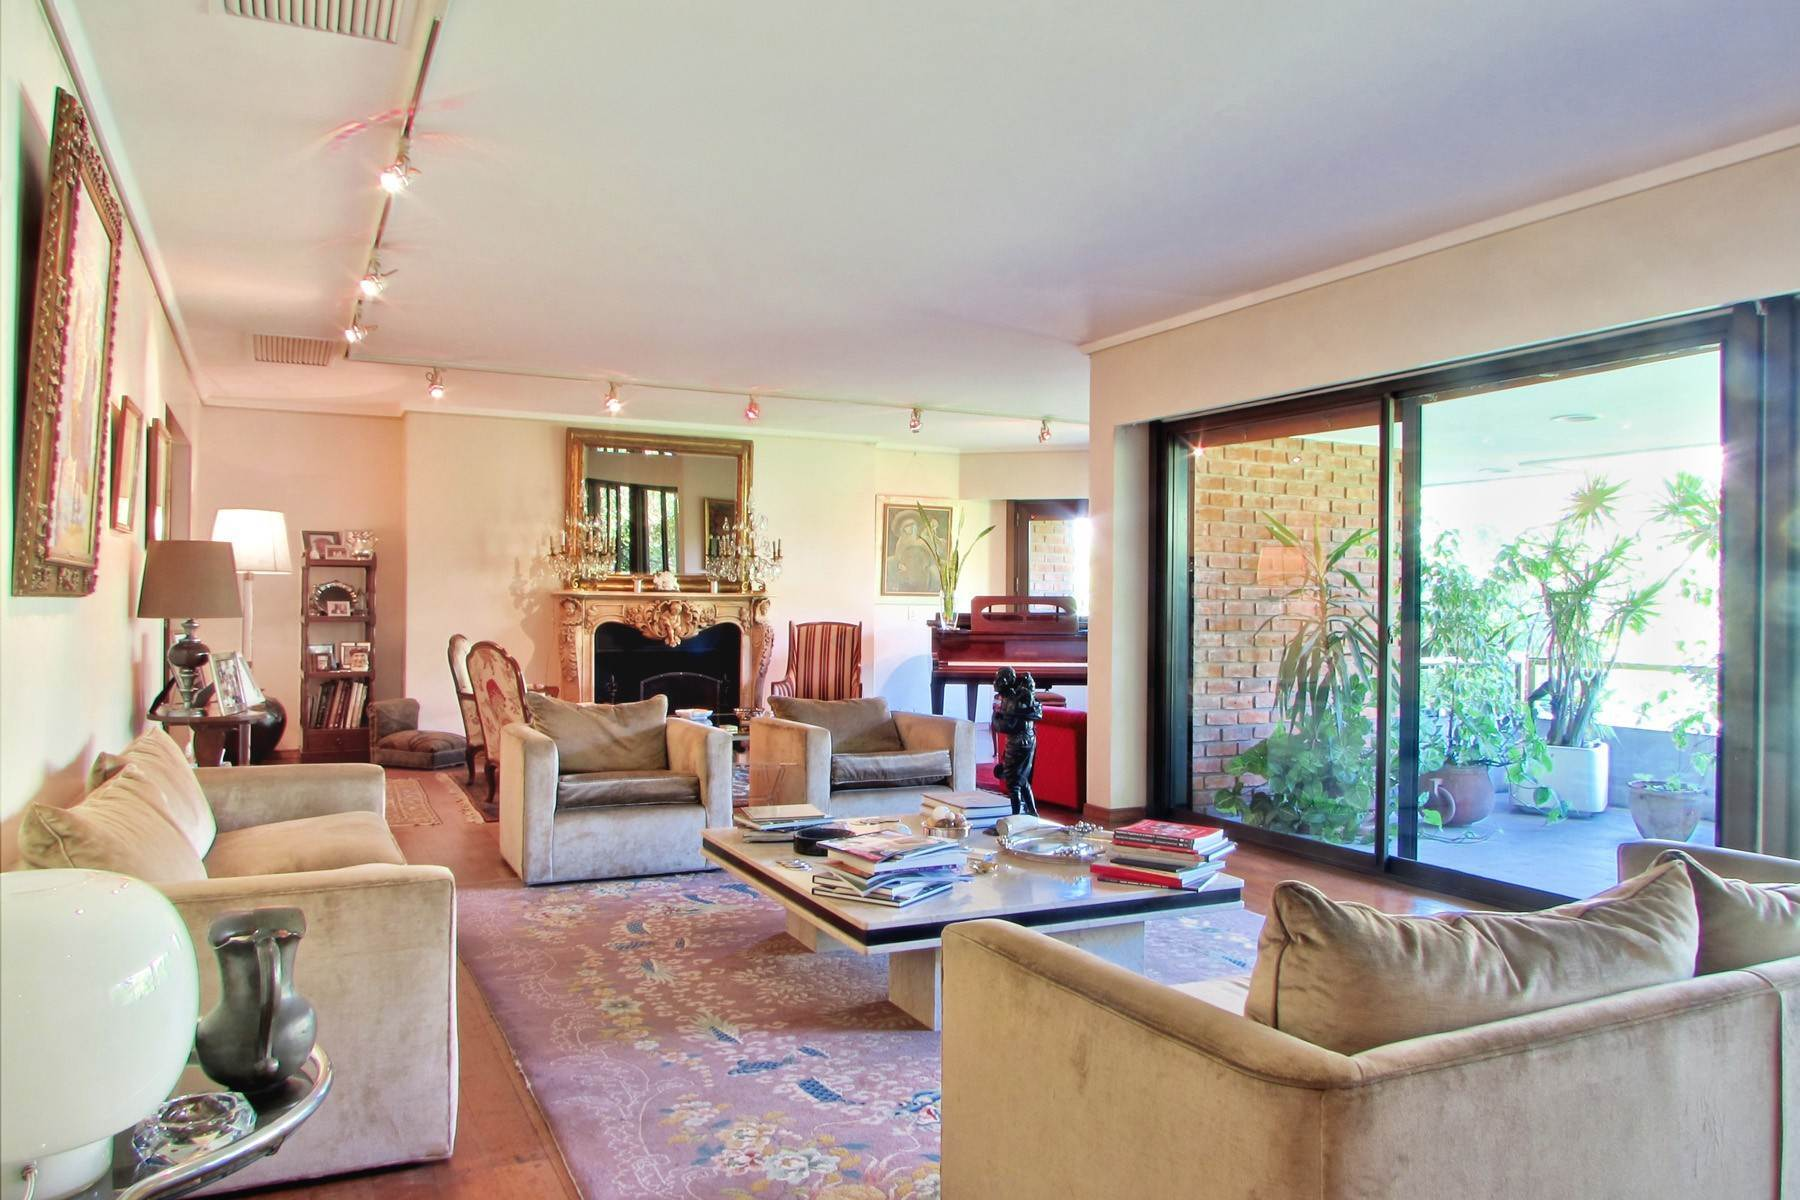 Apartments for Sale at Luxury Penthouse in Palermo Chico Aguado 2800, Buenos Aires, Buenos Aires, 1425 Argentina